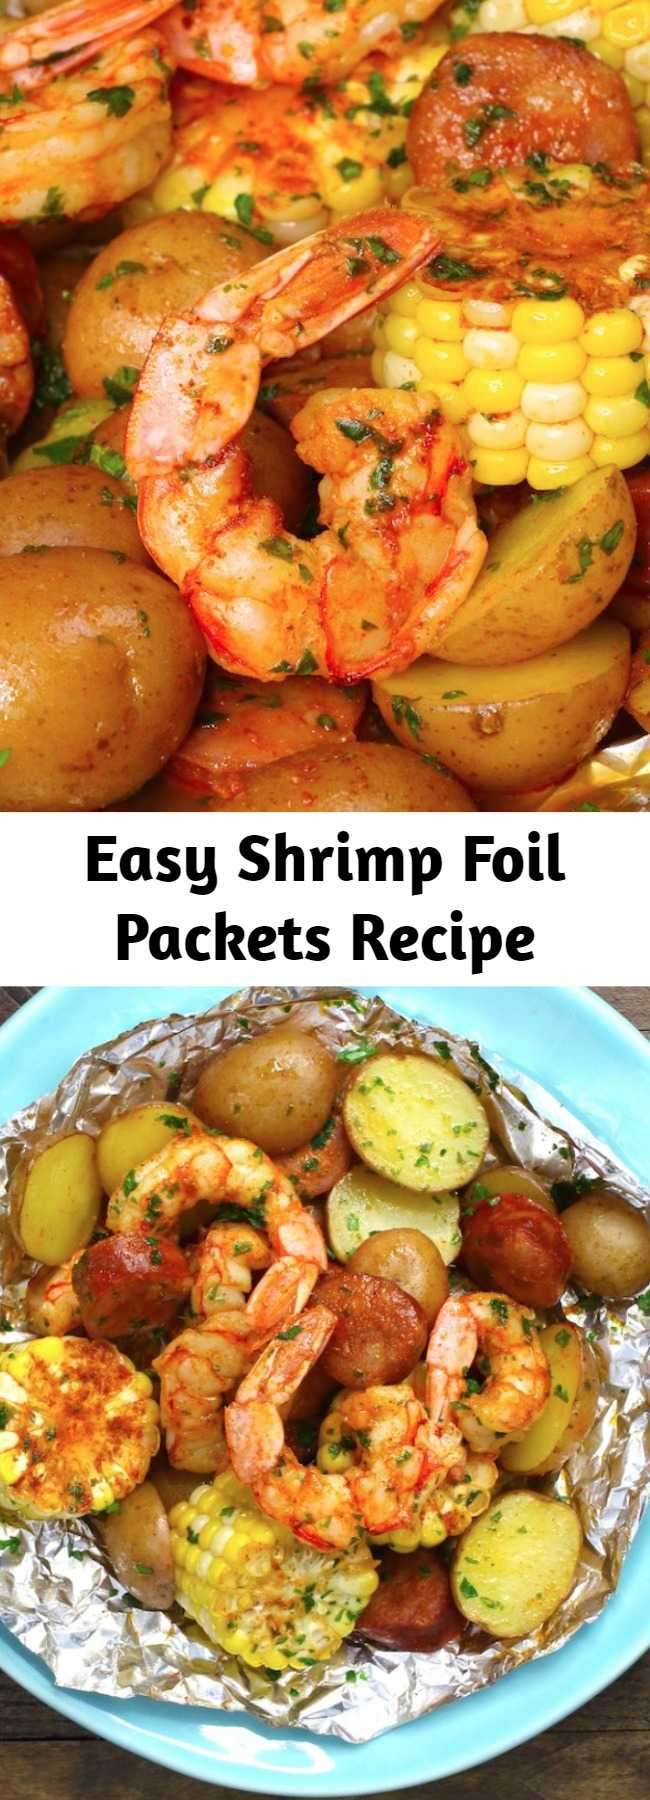 Easy Shrimp Foil Packets Recipe - These Shrimp Boil Foil Packs are full of juicy shrimp, sausage, corn and potatoes with Cajun seasoning and fresh lemon. You can grill them on the bbq or bake in the oven. These shrimp foil packets are an easy dinner that's also fun to make for a party!